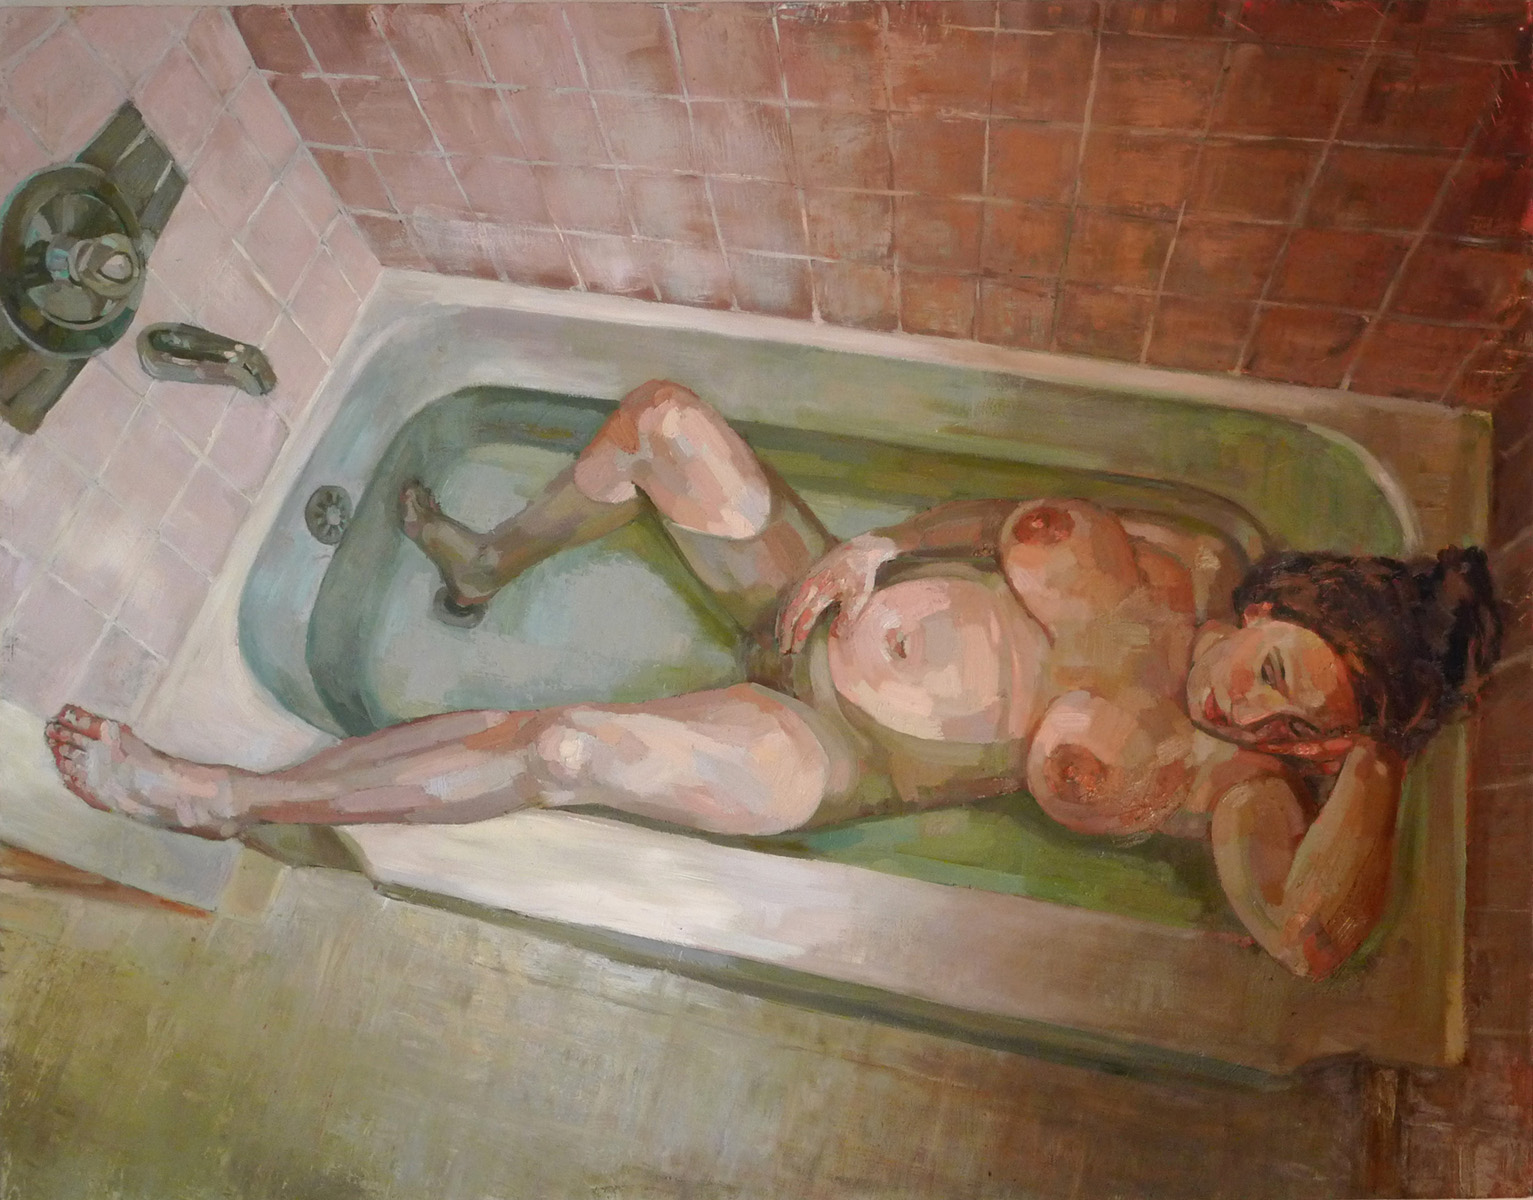 Pregnant Woman In A Bath Tub